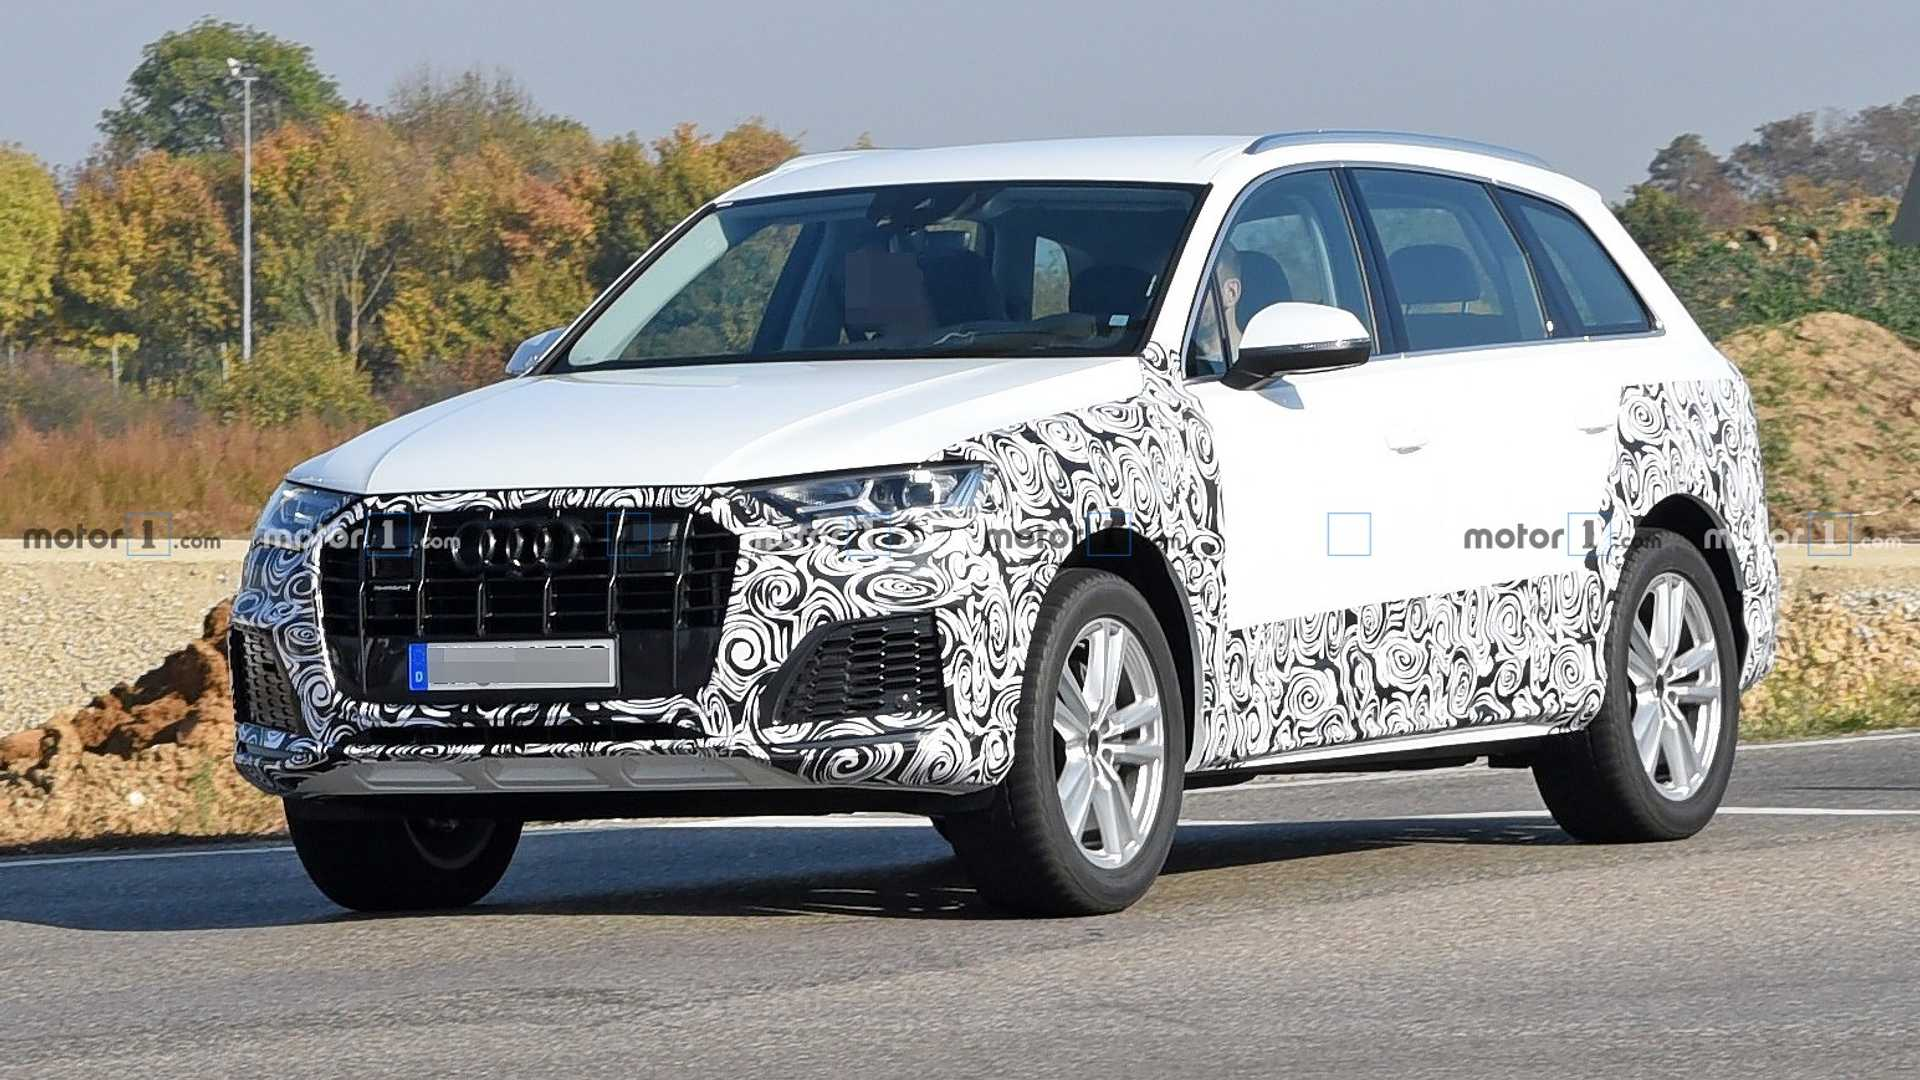 19 New 2019 Audi Q7 Facelift Spesification with 2019 Audi Q7 Facelift